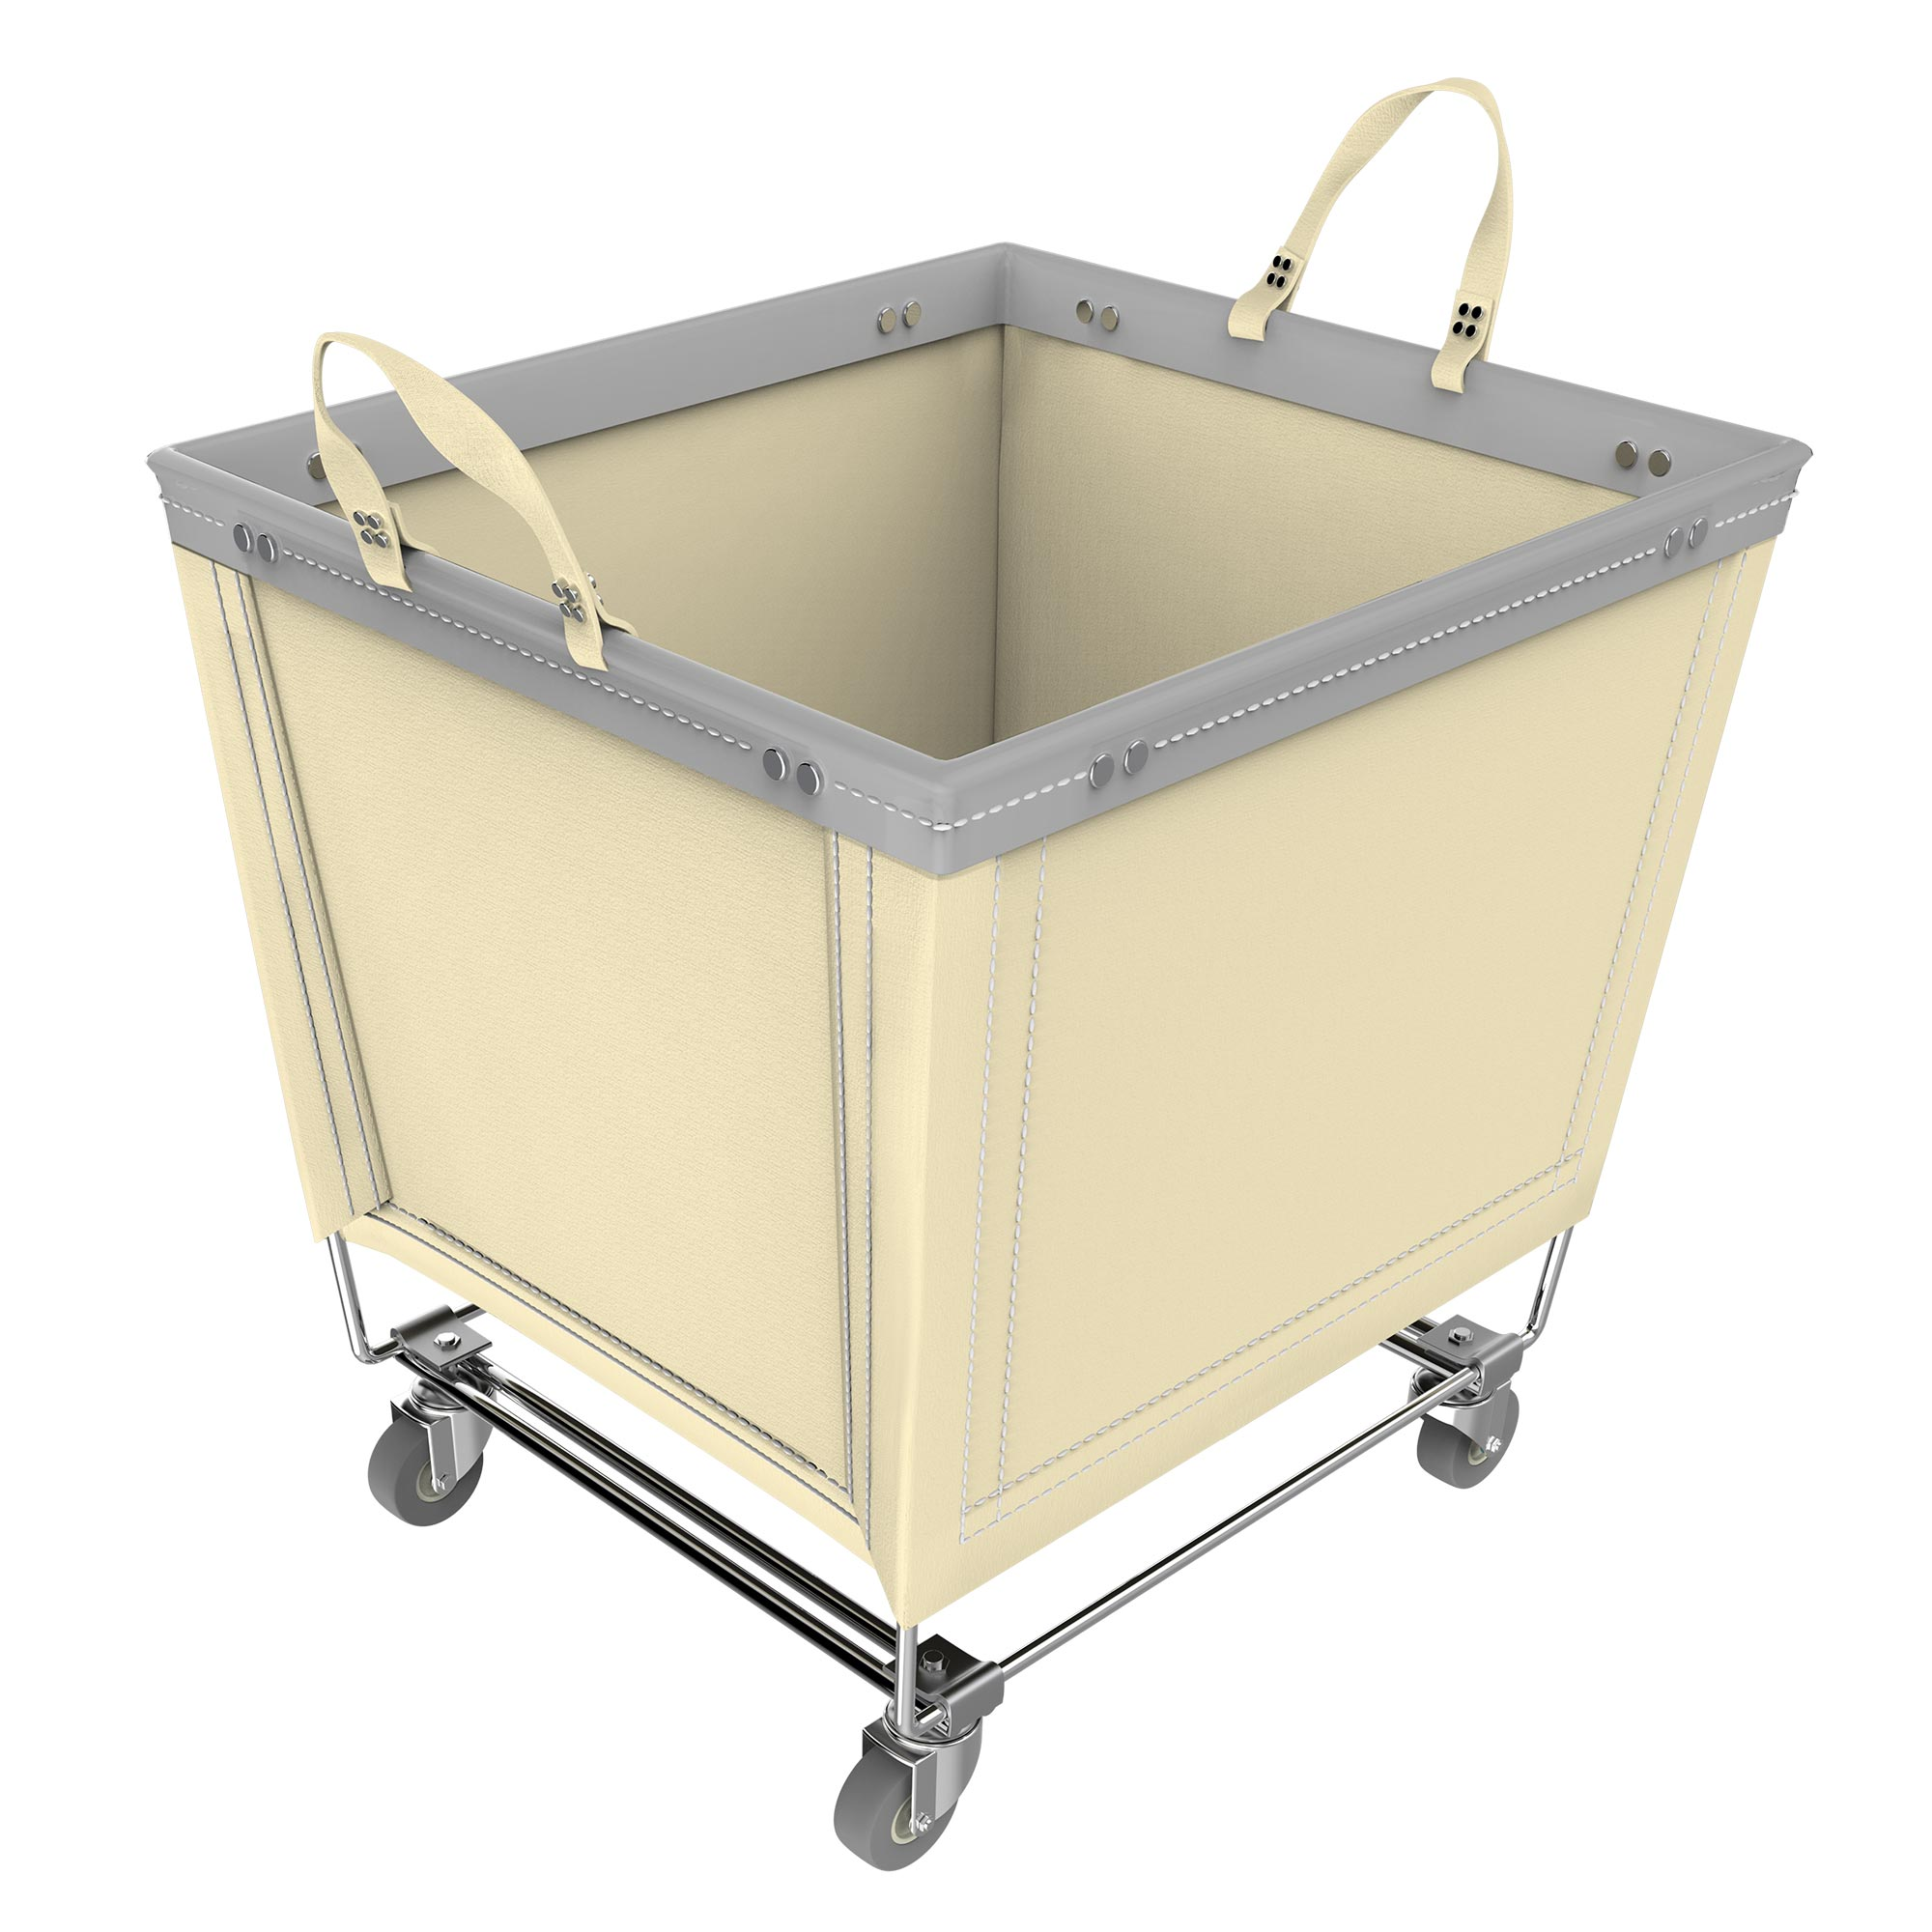 Laundry Bin With Wheels Laundry Cart Laundry Hamper Laundry Basket Venace